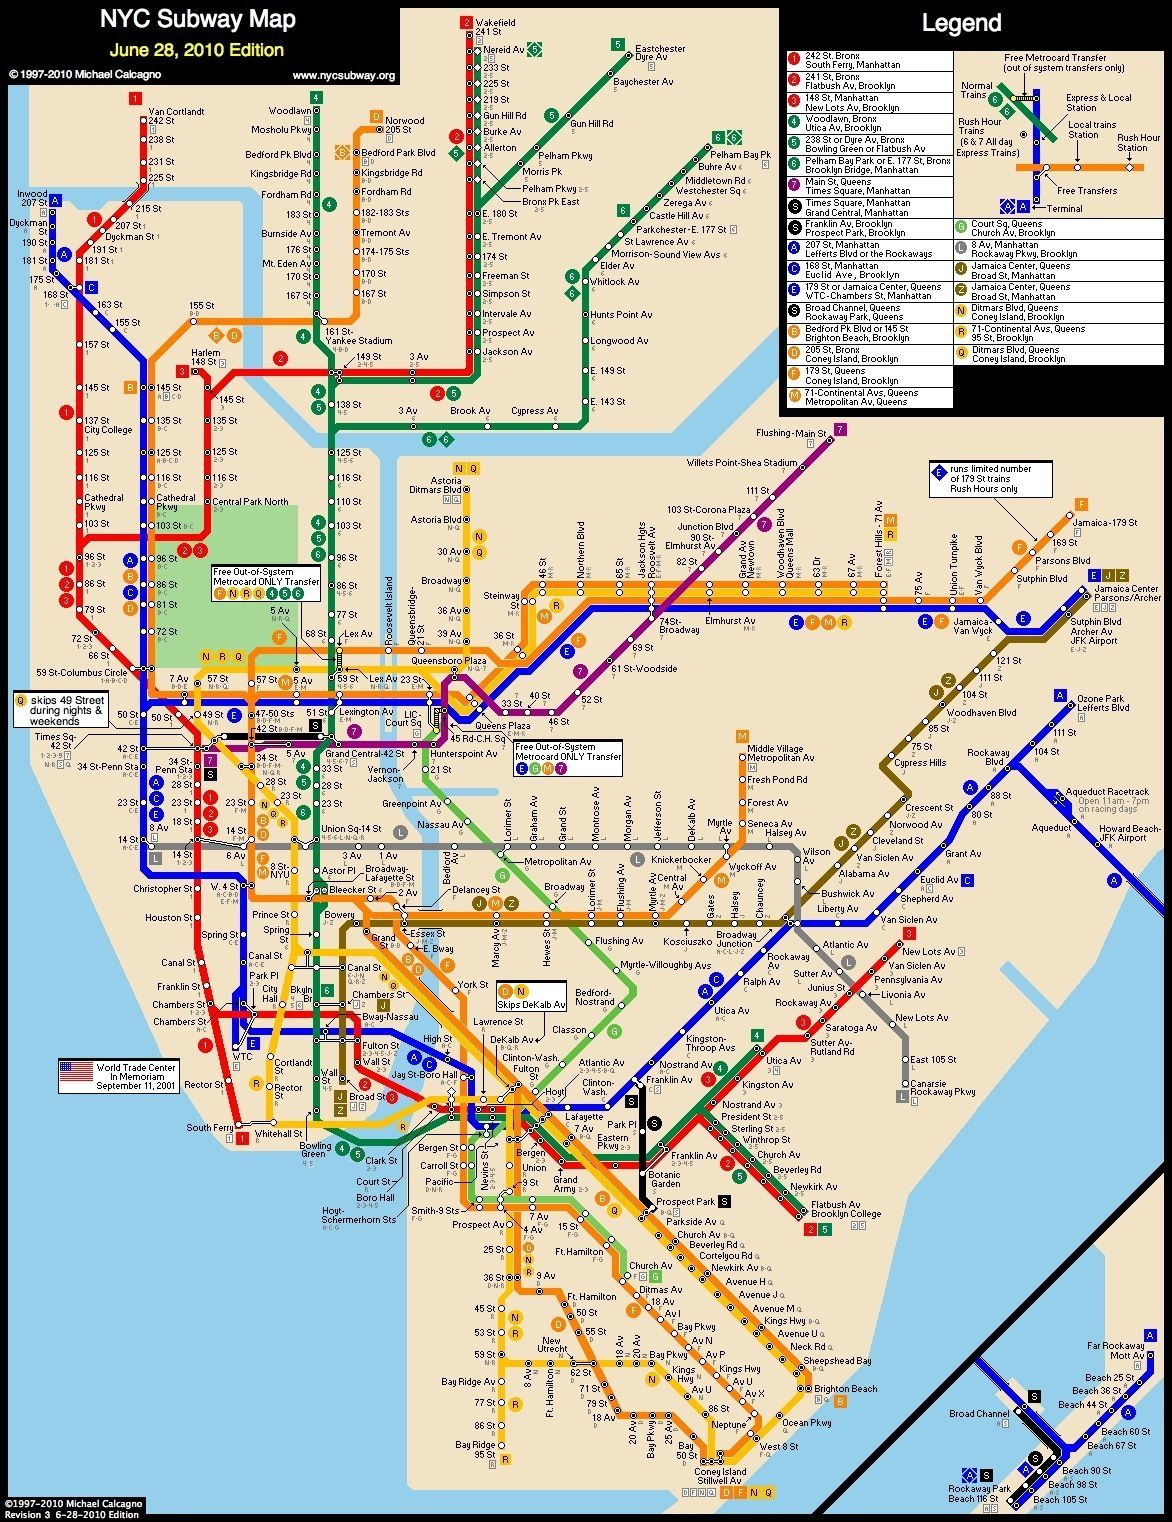 Subway Map D Train.Nyc Subway Map From Liberty Harbor Rv To Columbia Stadium Grove St